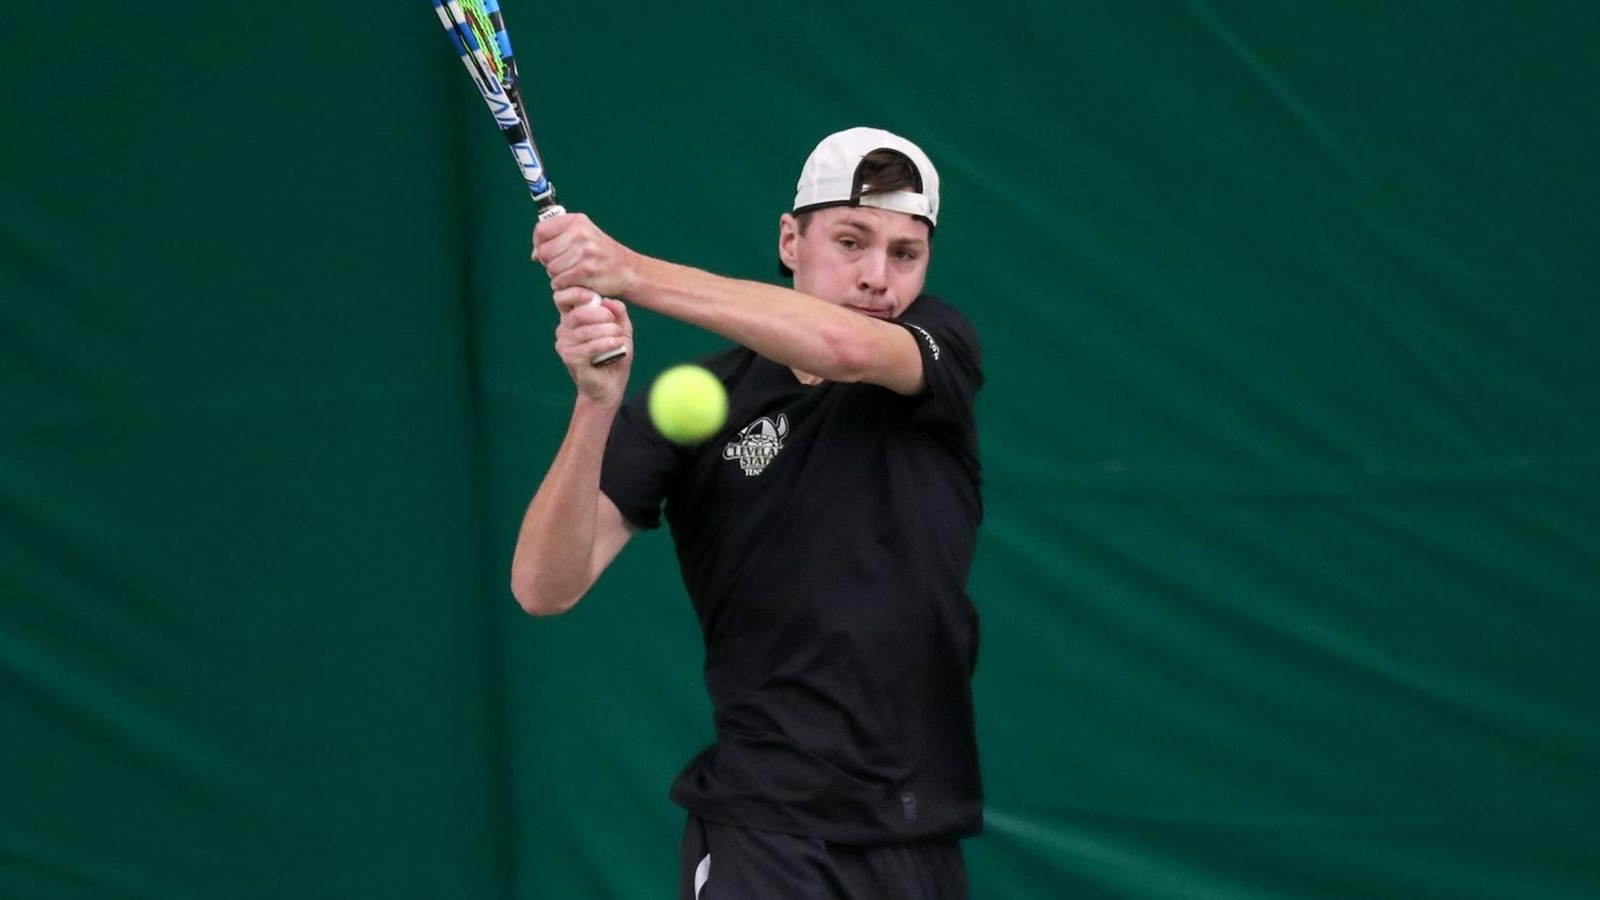 Men's Tennis Opens Spring Campaign With Tough Matchup At Kentucky